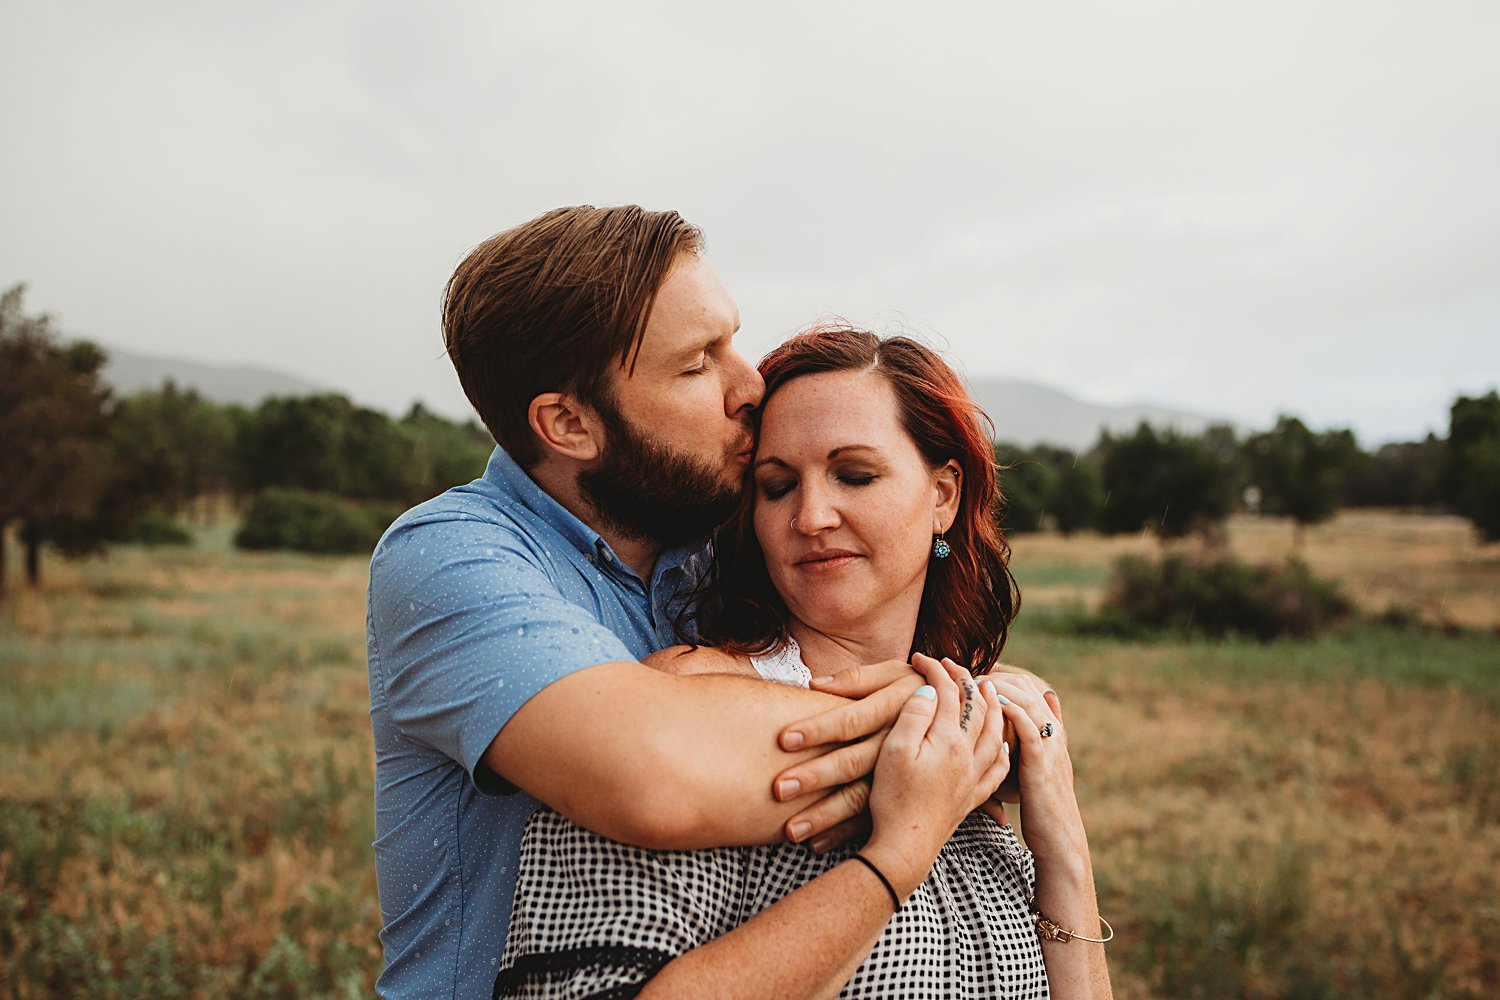 Man embraces wife and gives her a kiss on the cheek